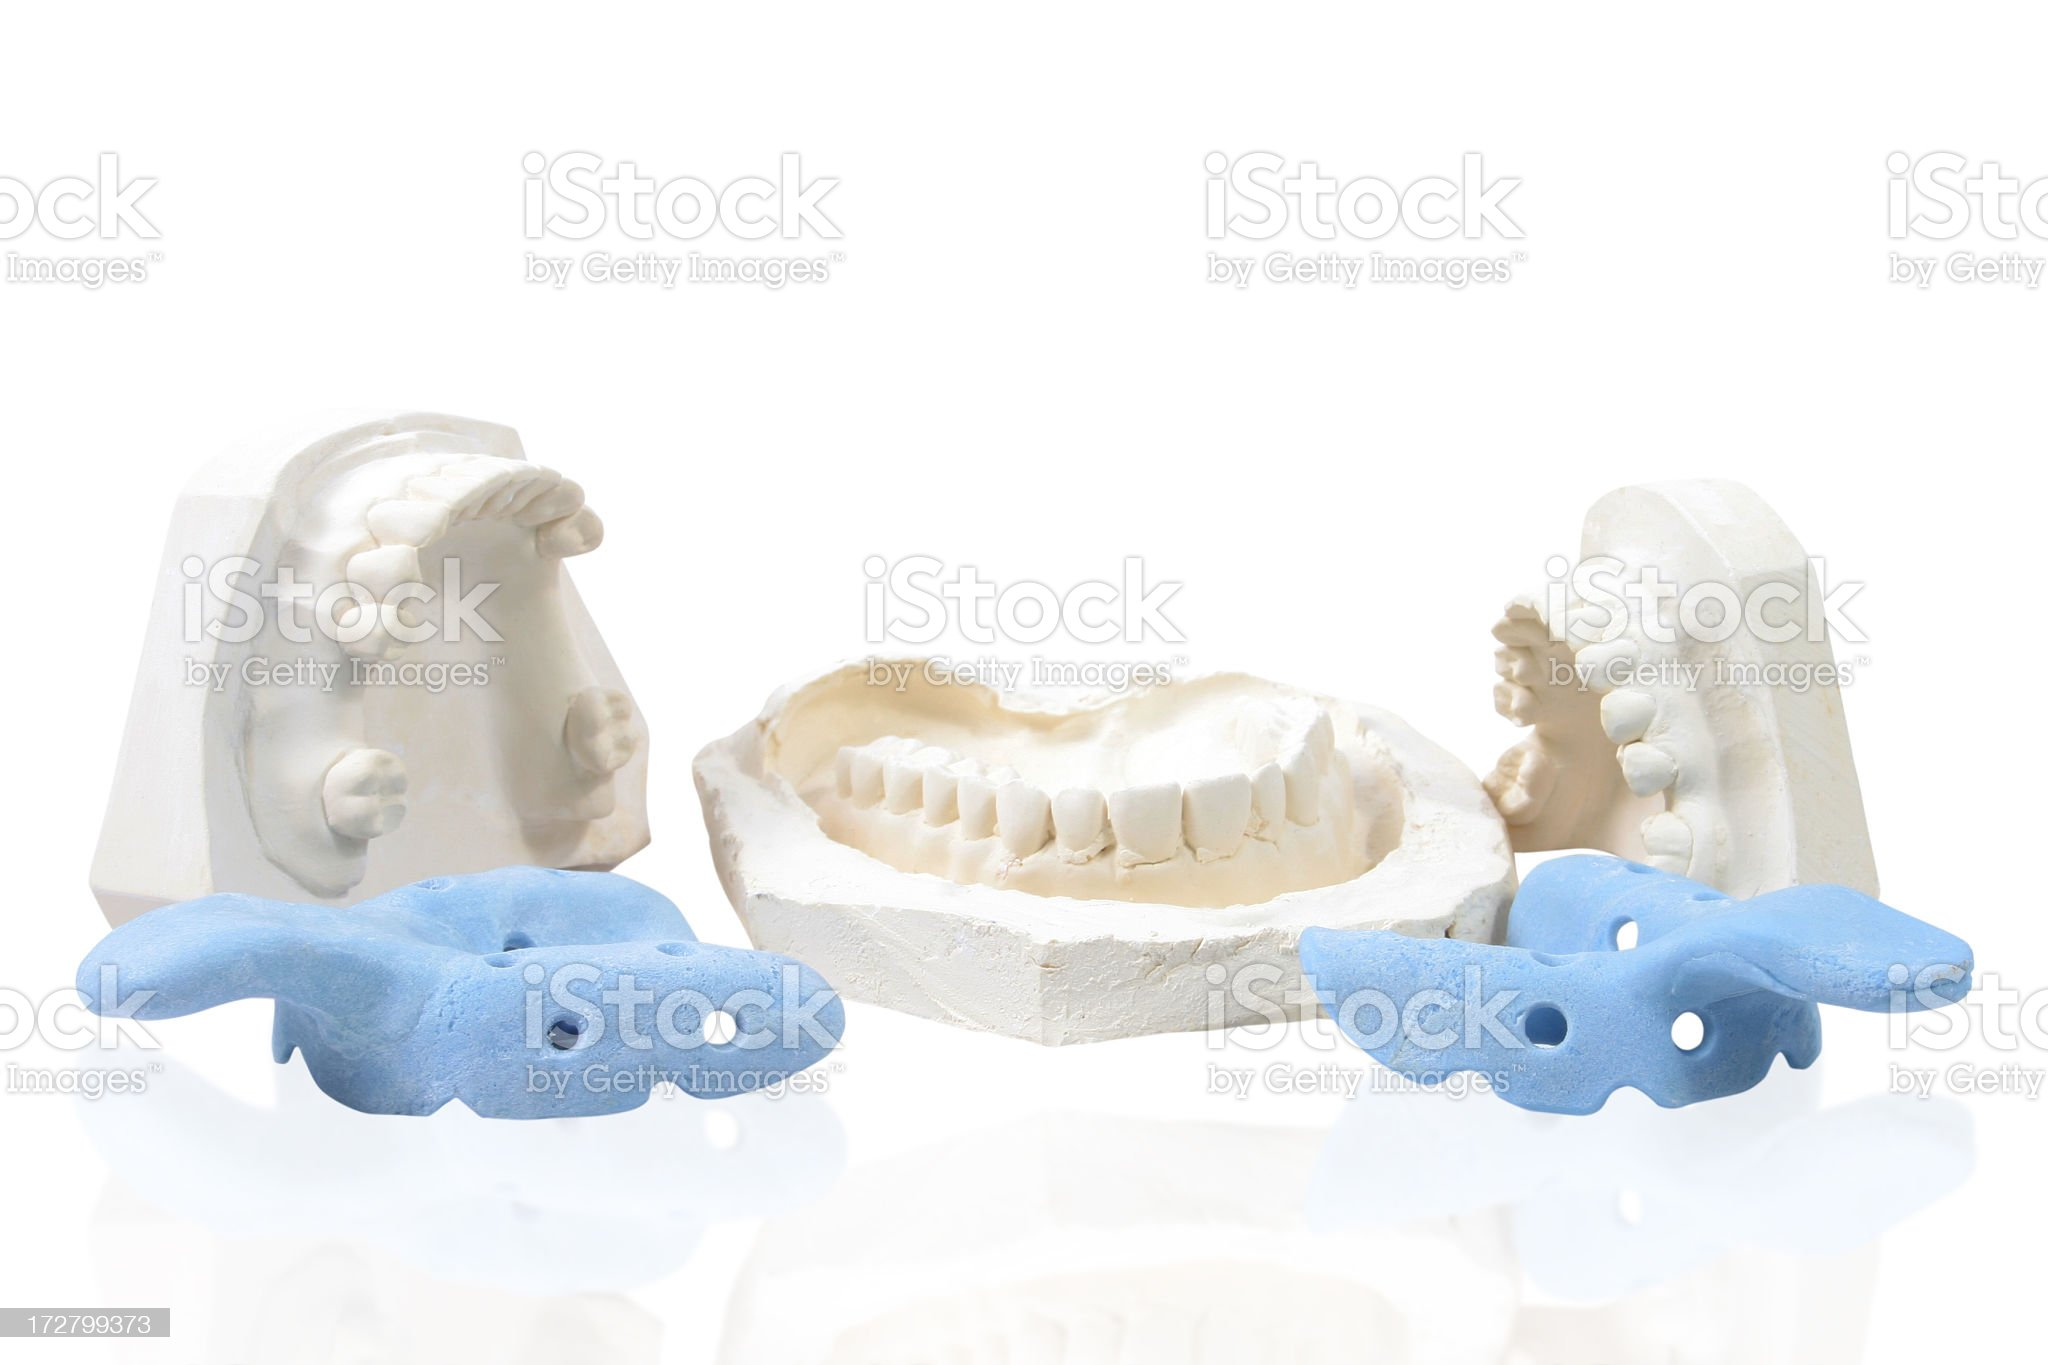 Dental plaster moulds royalty-free stock photo